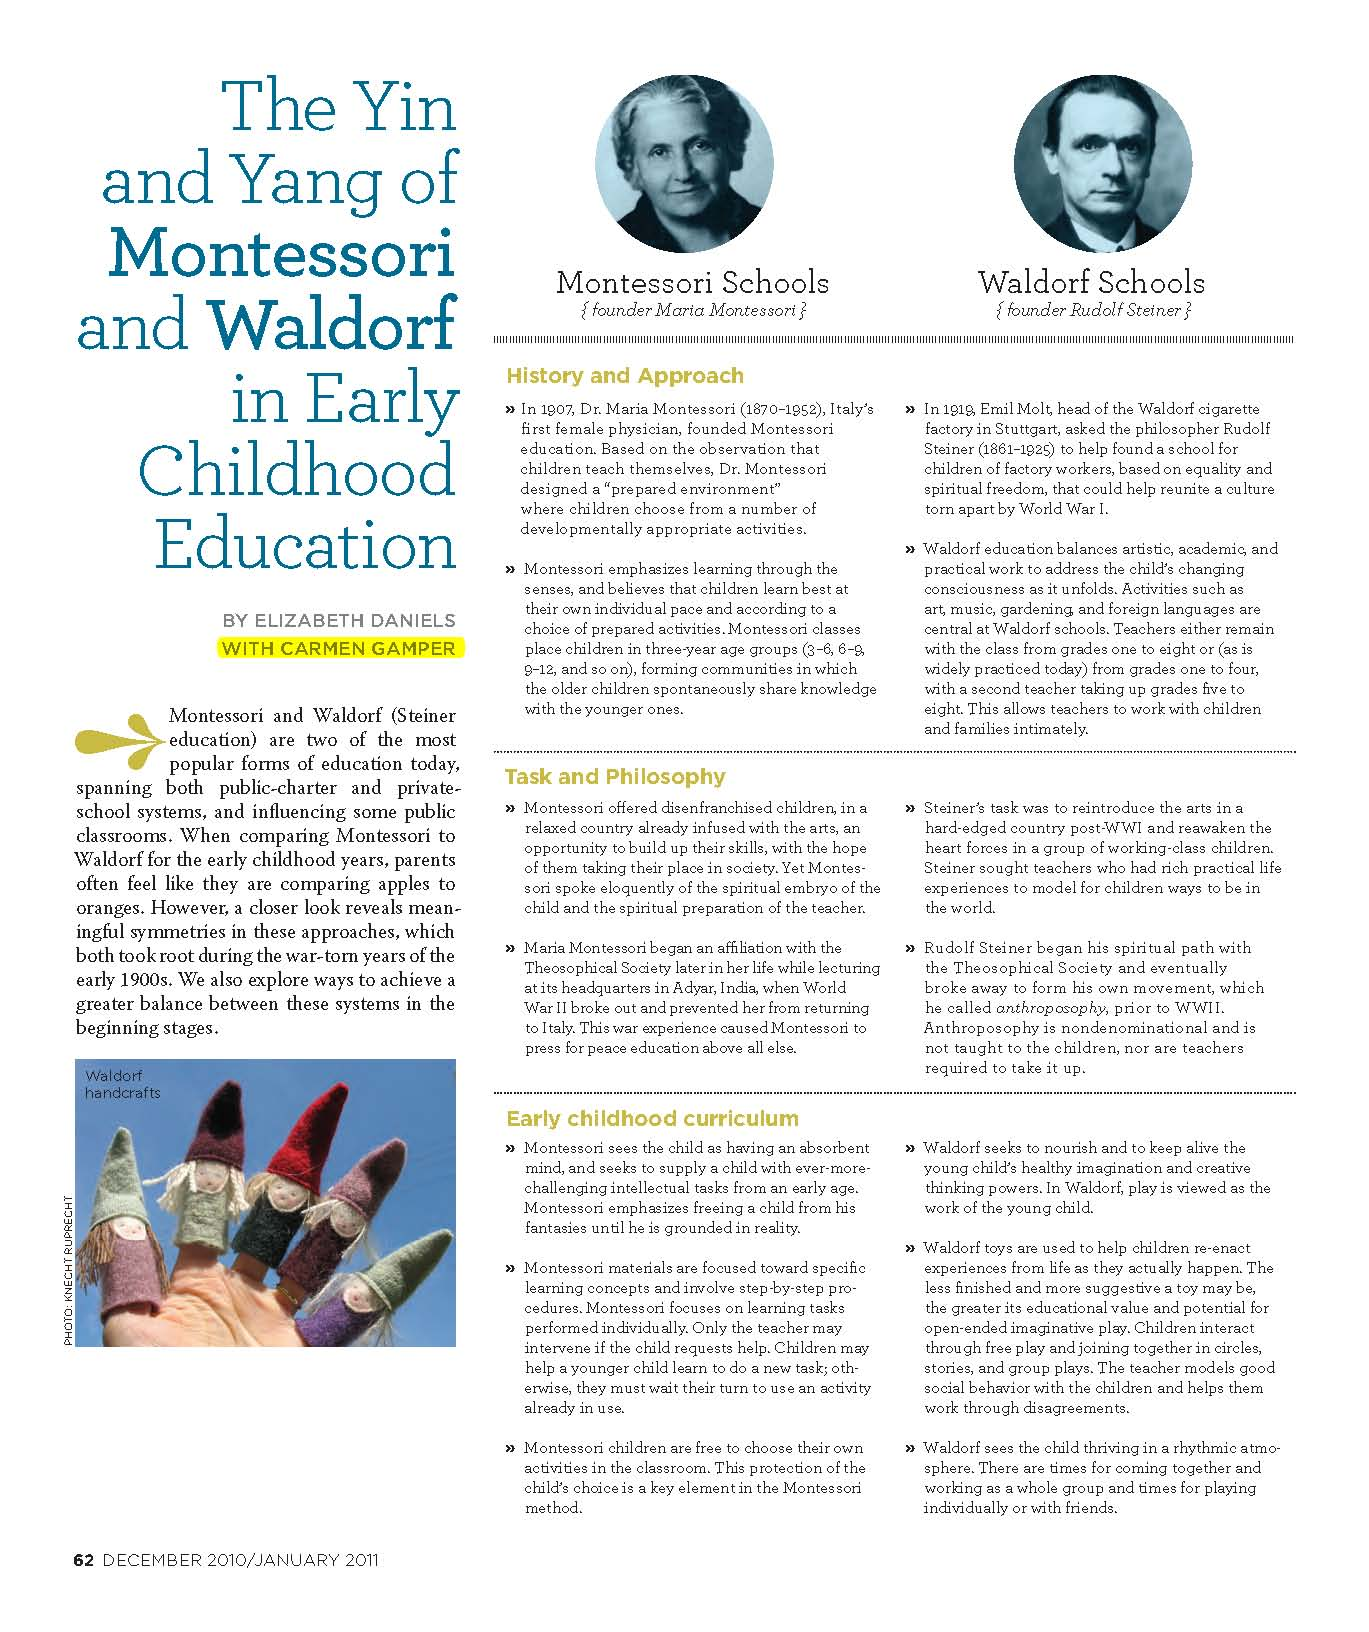 controversial aspects of waldorf school education This postgraduate course emphasizes the use of video-based education and  masters of minimally invasive thoracic  of minimally invasive thoracic surgery.